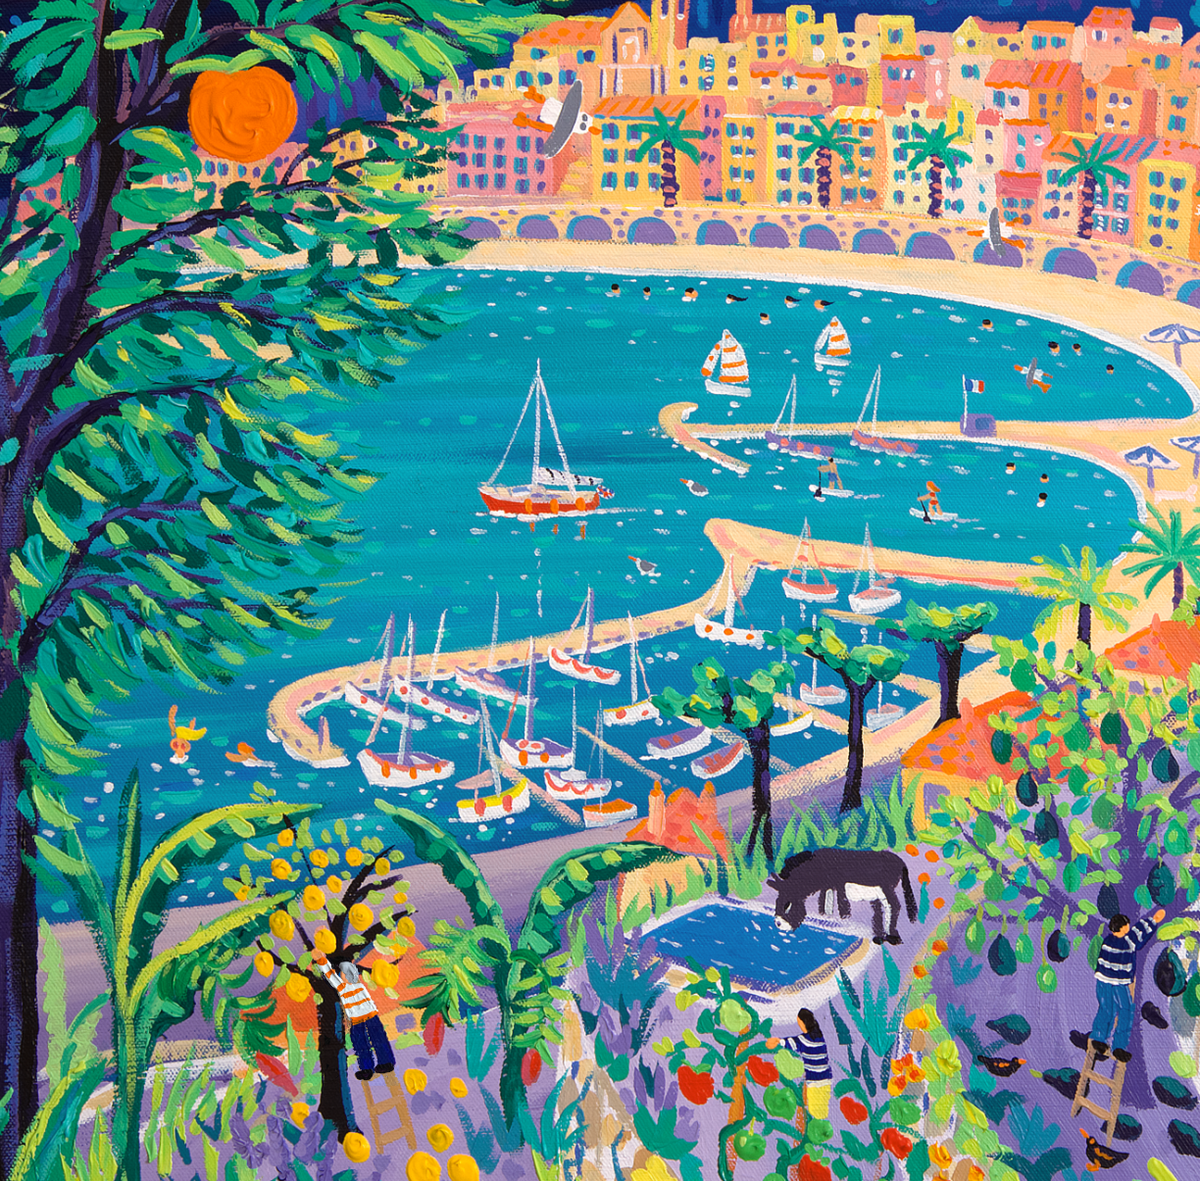 John Dyer Painting. Sailing past the Jardin Des Antipodes, Menton. 80cm x 80cm acrylic on canvas